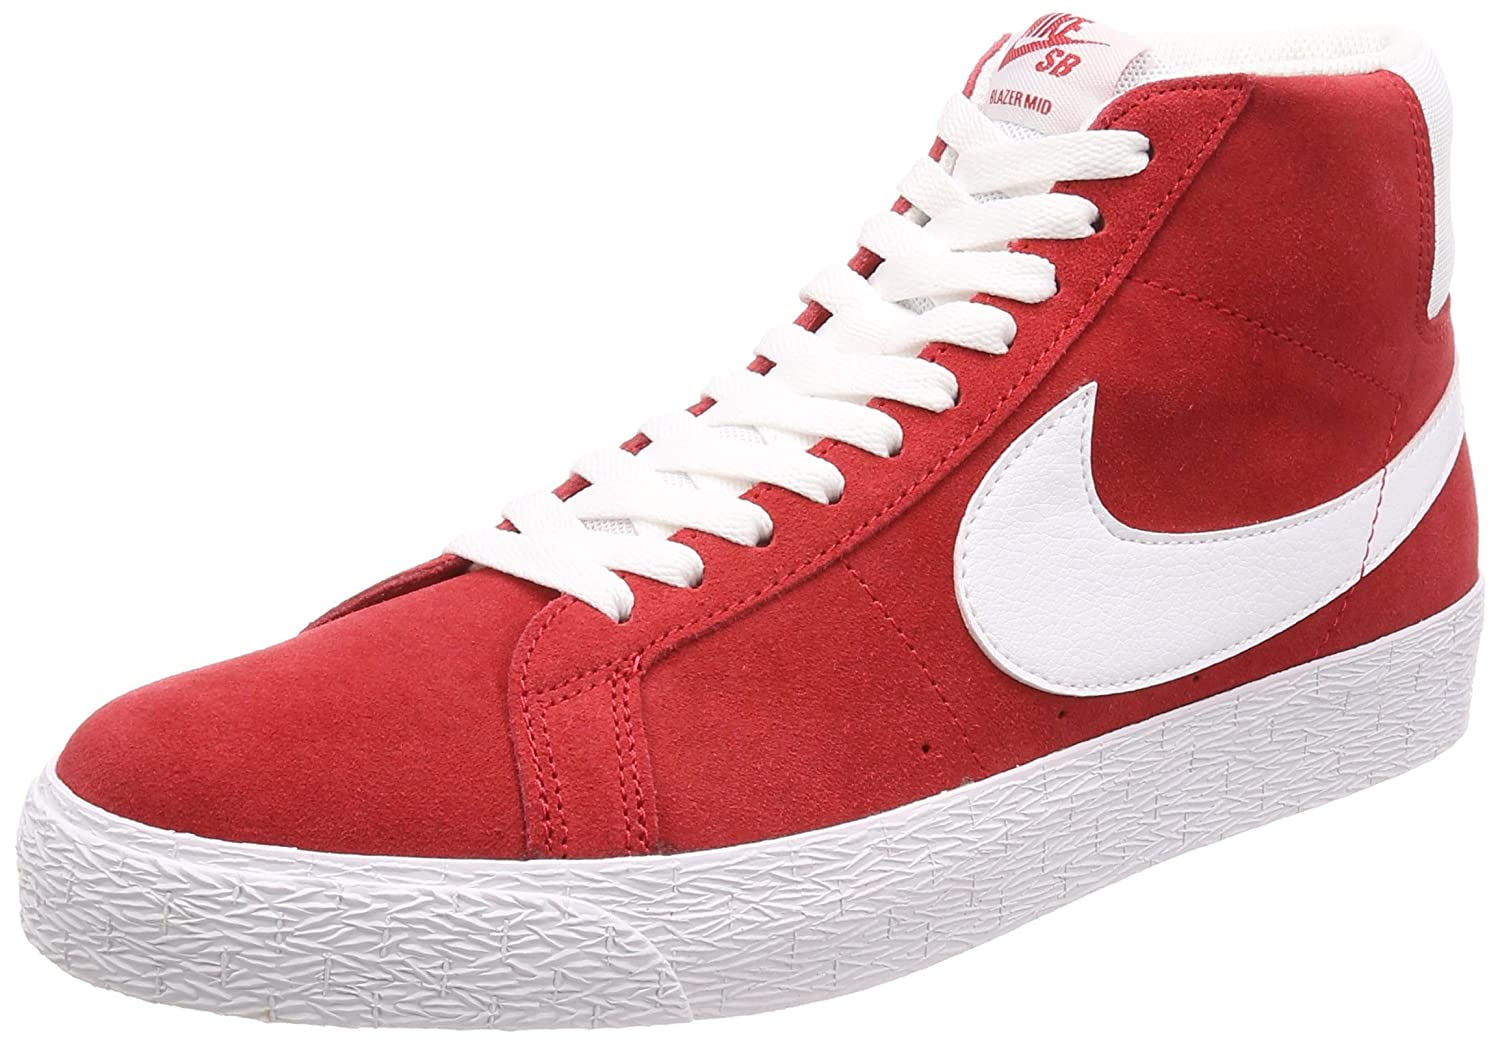 Nike SB Blazer Zoom Mid University Red/White  85